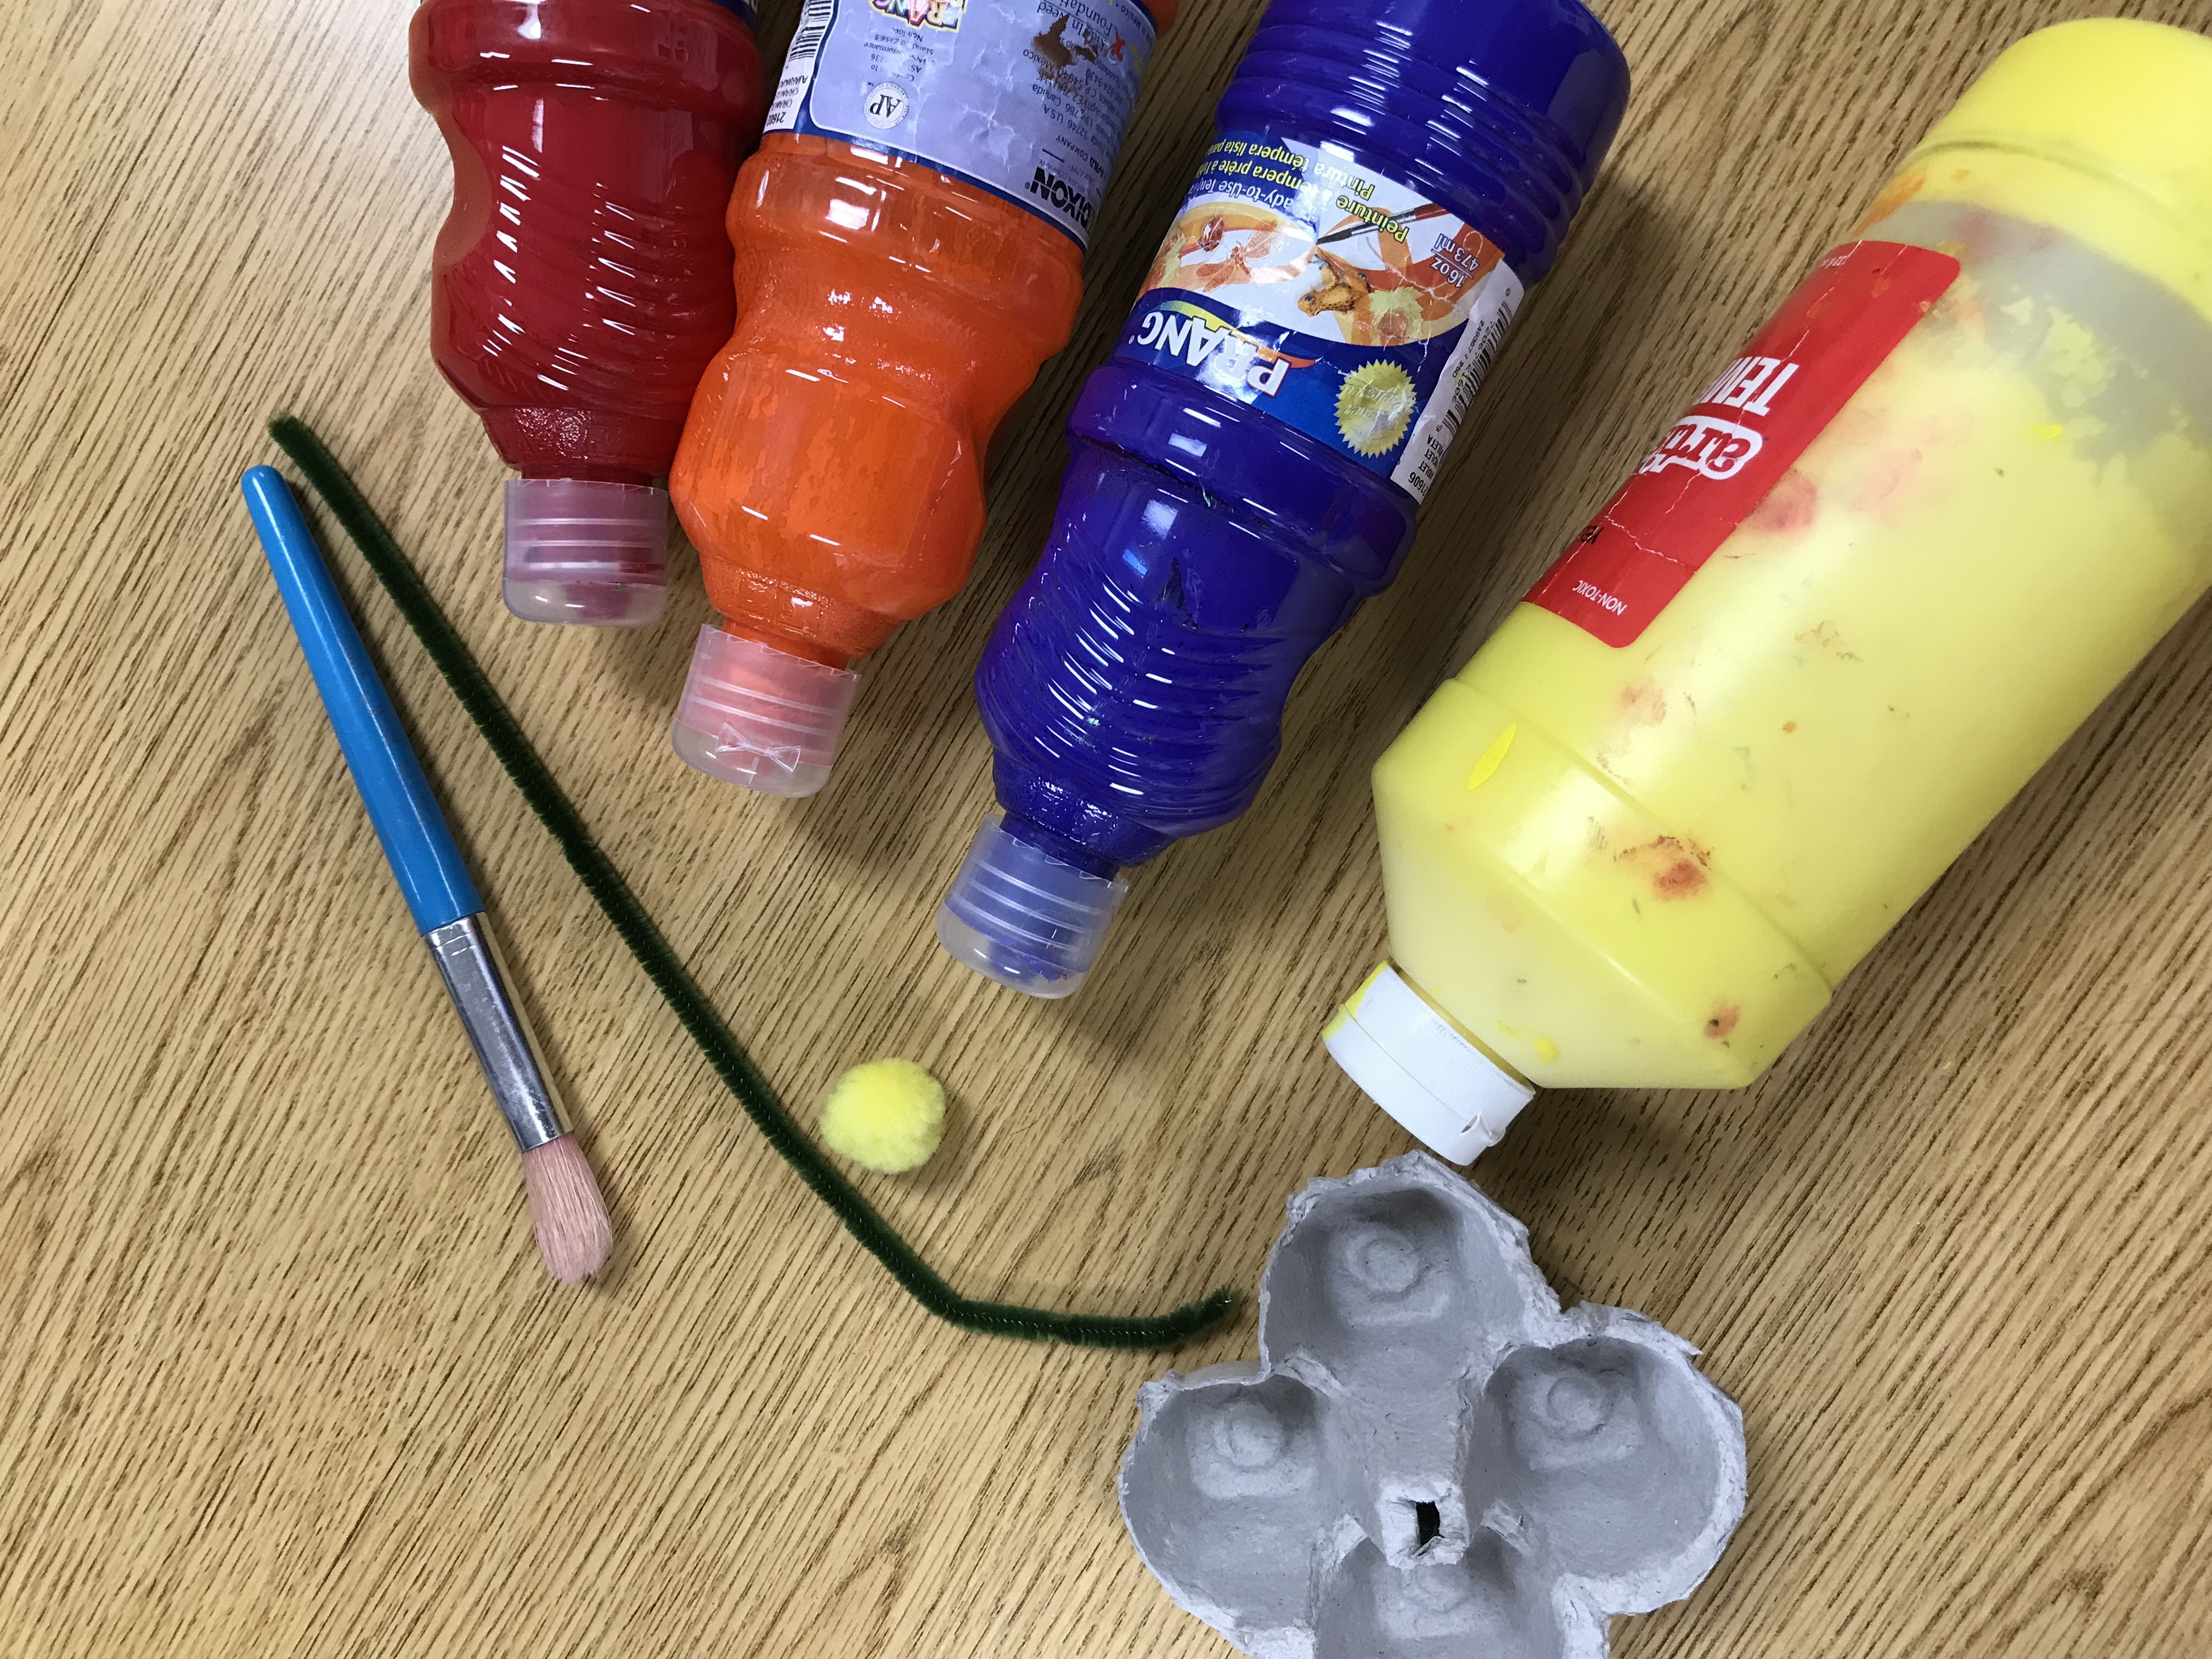 Paints, pipe cleaner stem, paint brush, fuzzy ball and egg carton square